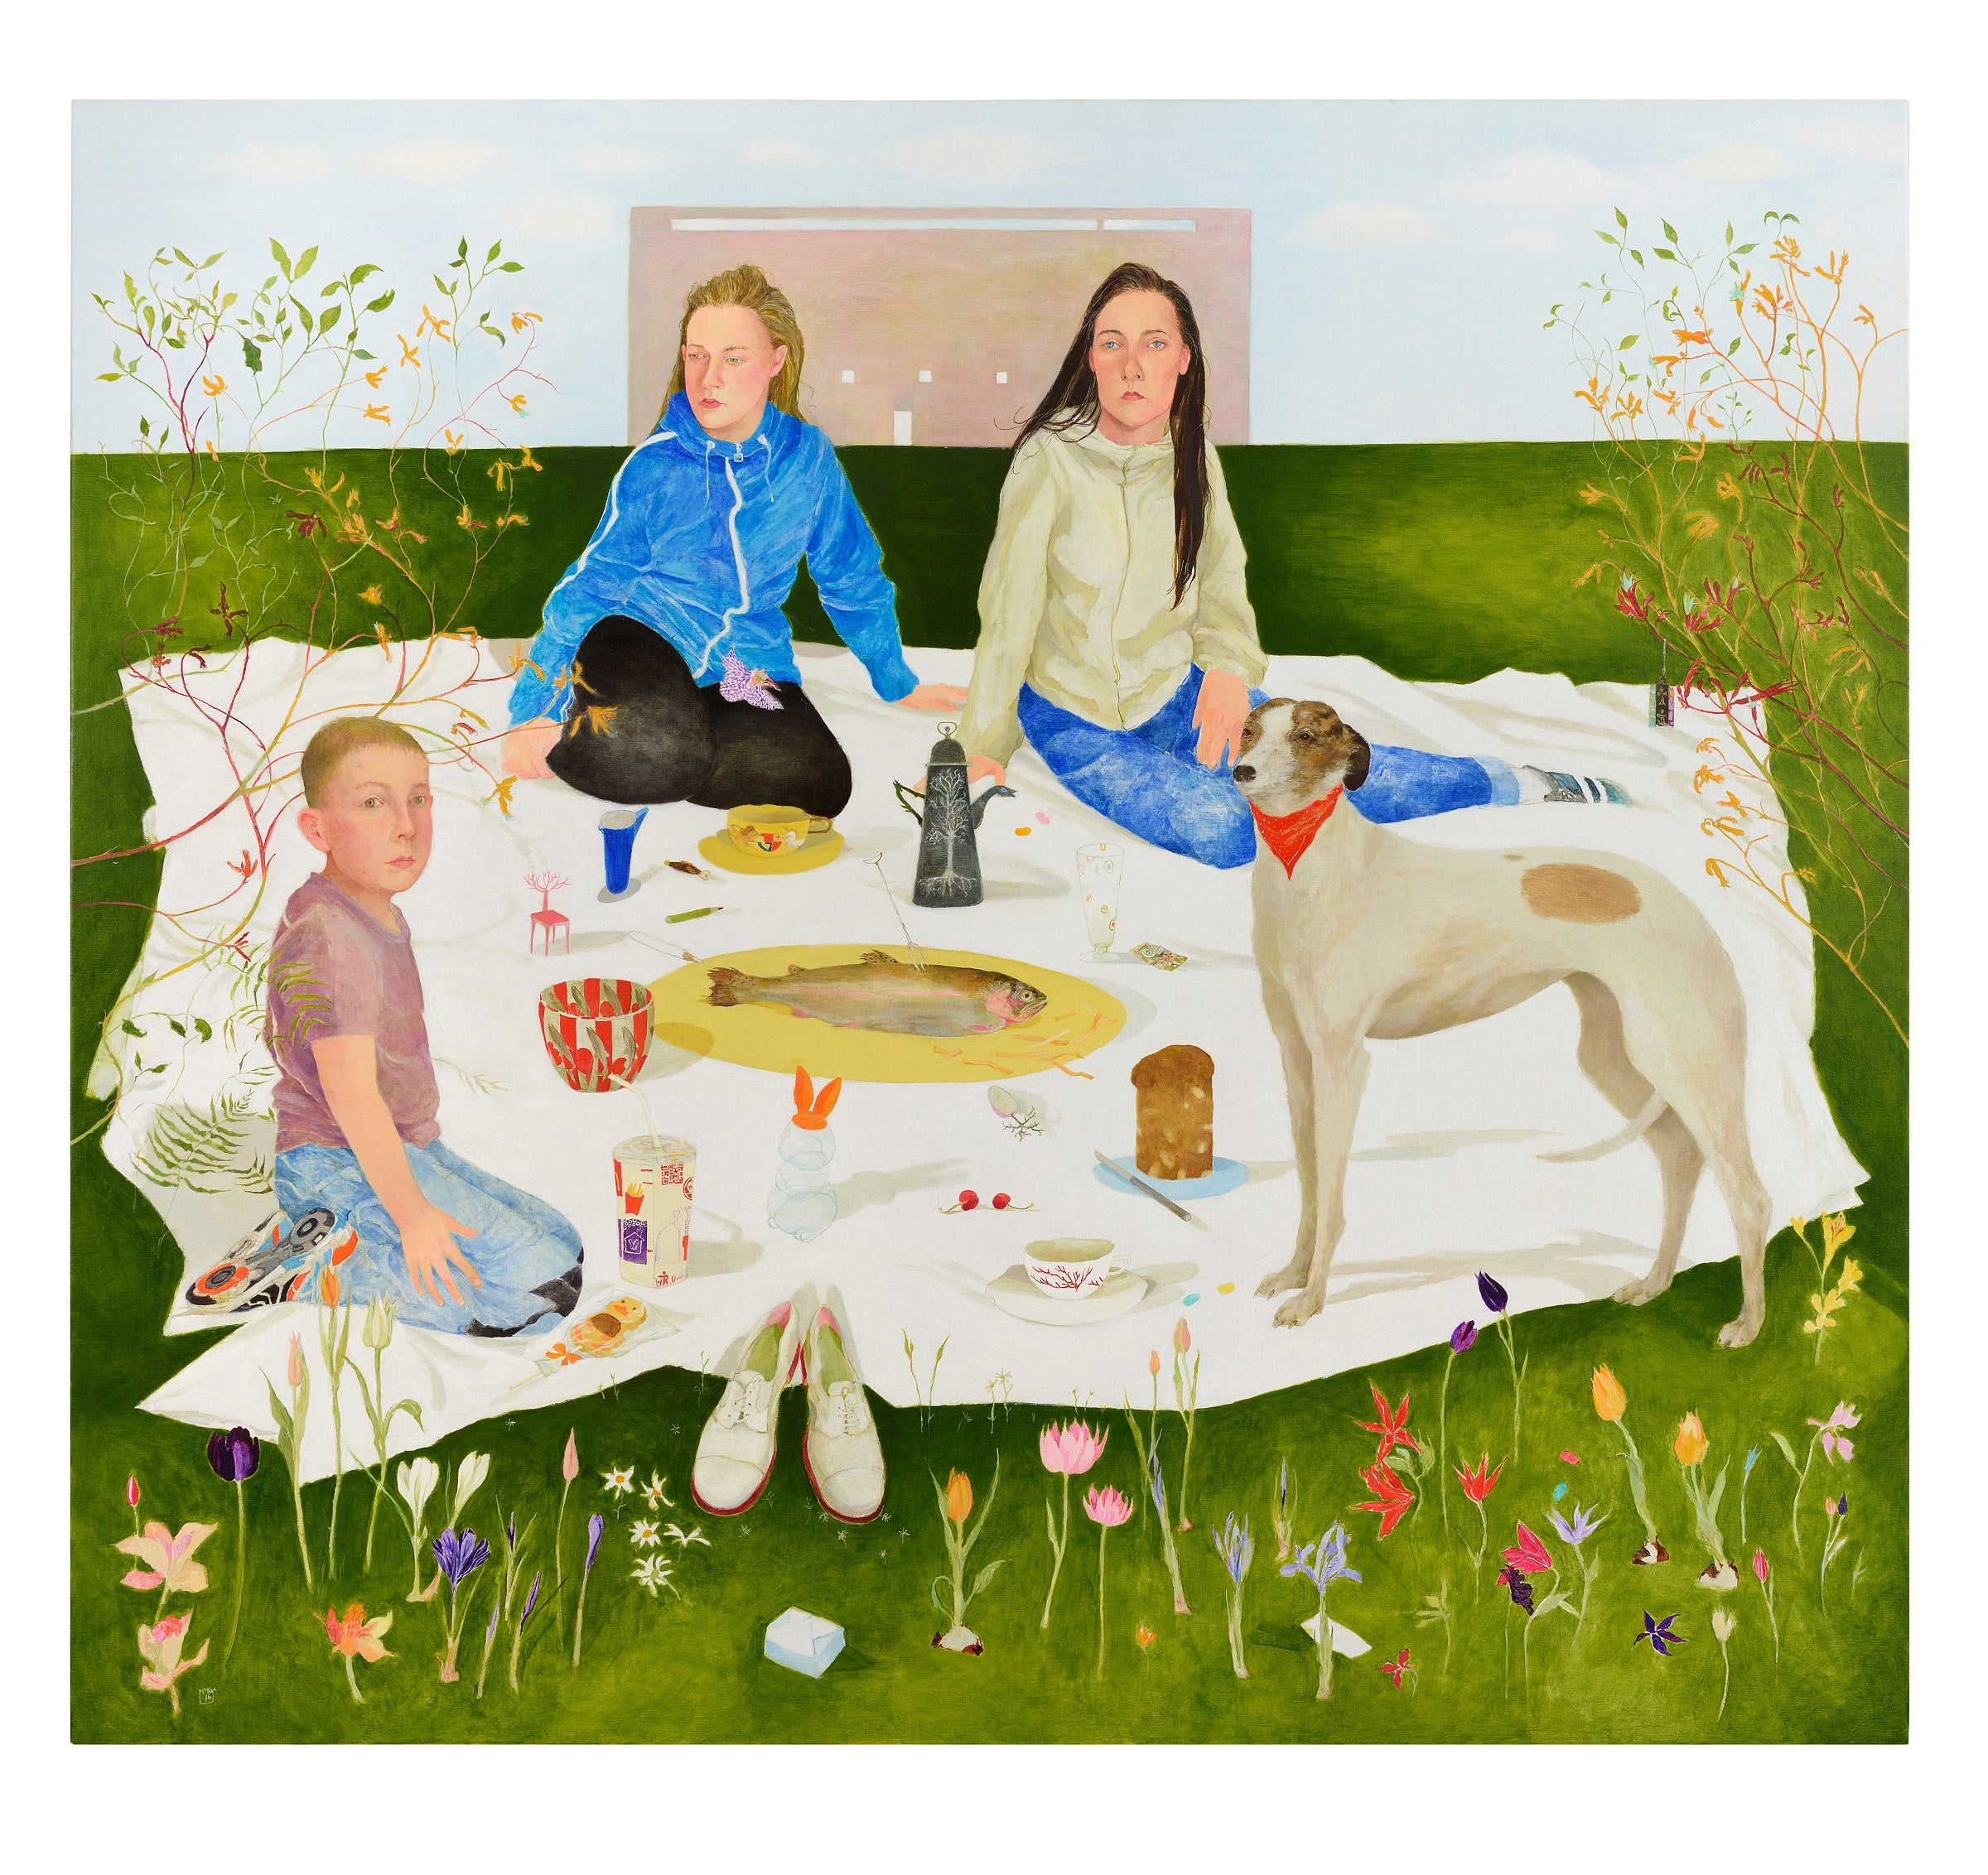 Jennifer Mcrae - Picnic of Lies